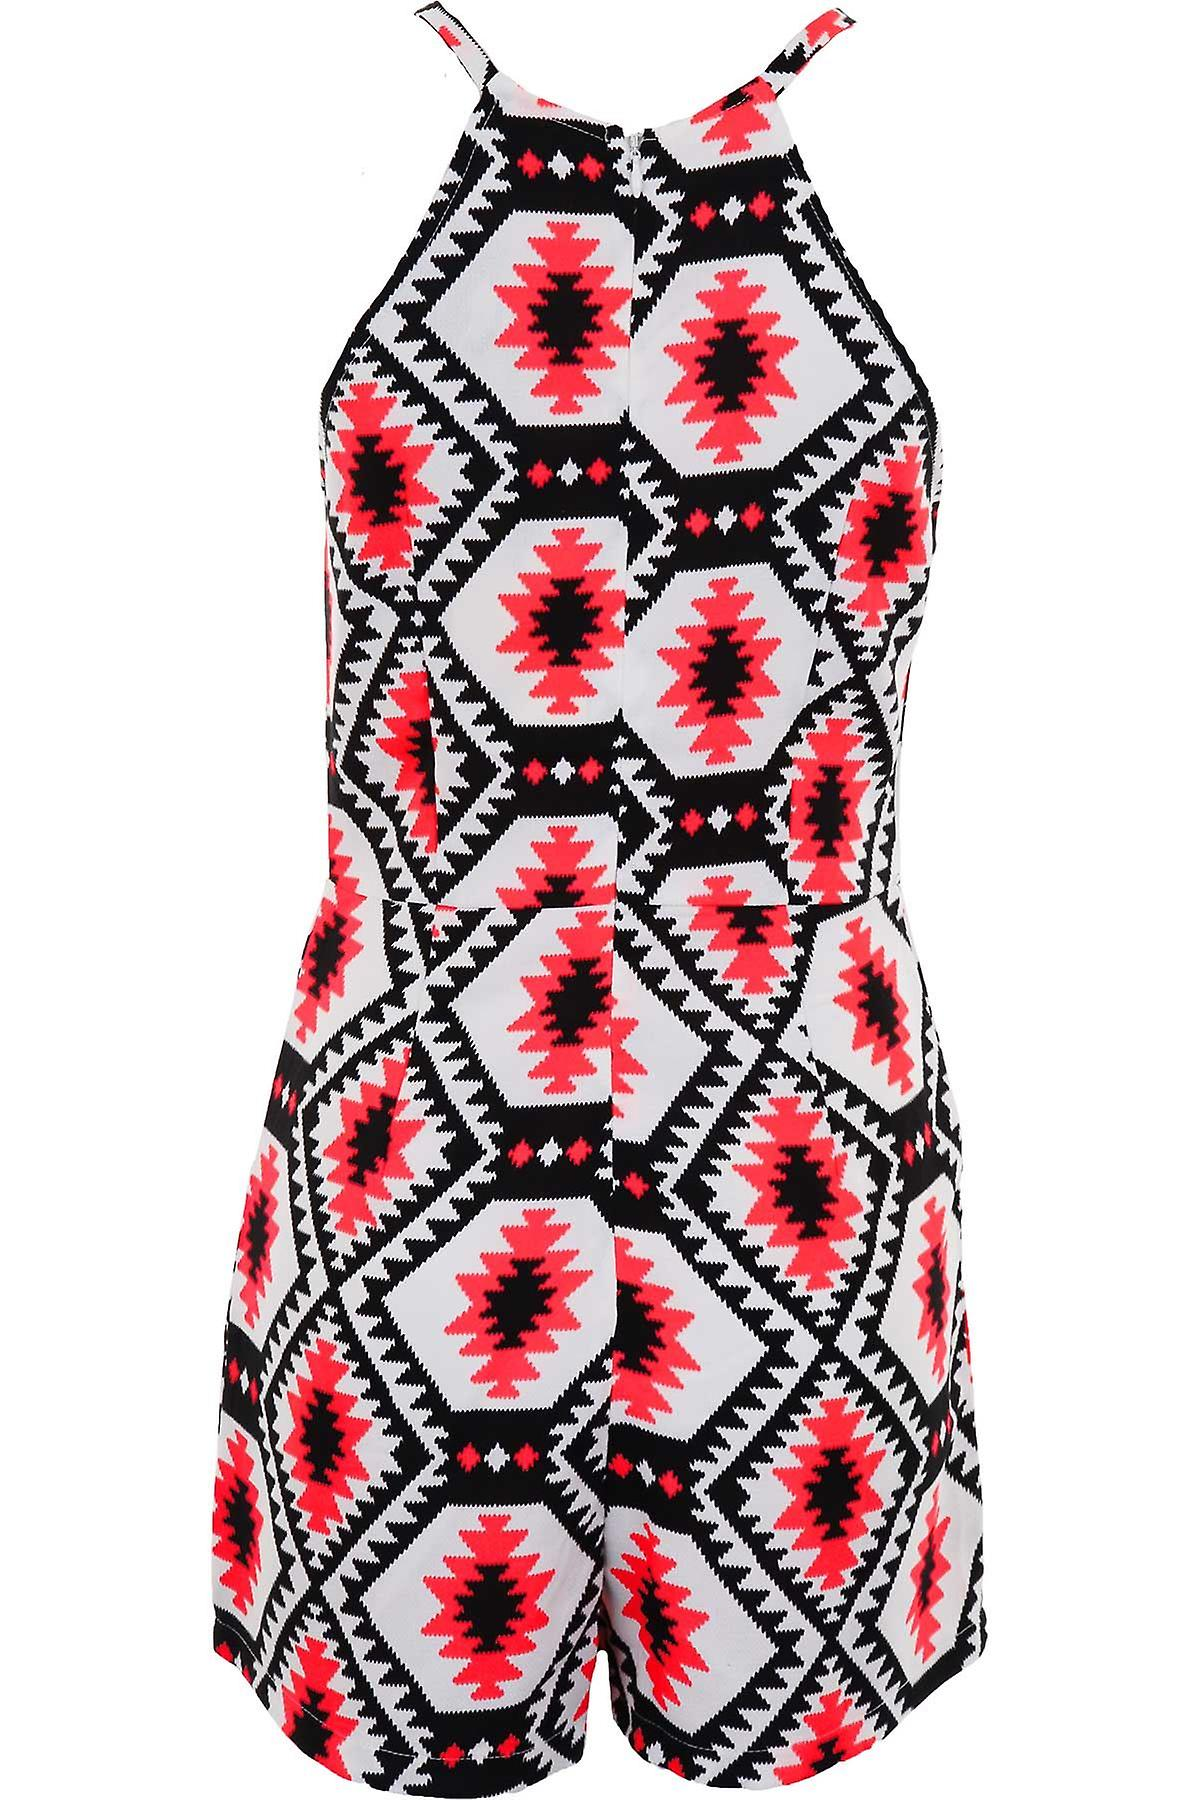 Ladies Strappy Neon Pink Aztec Print Women's Party Summer All In One Playsuit